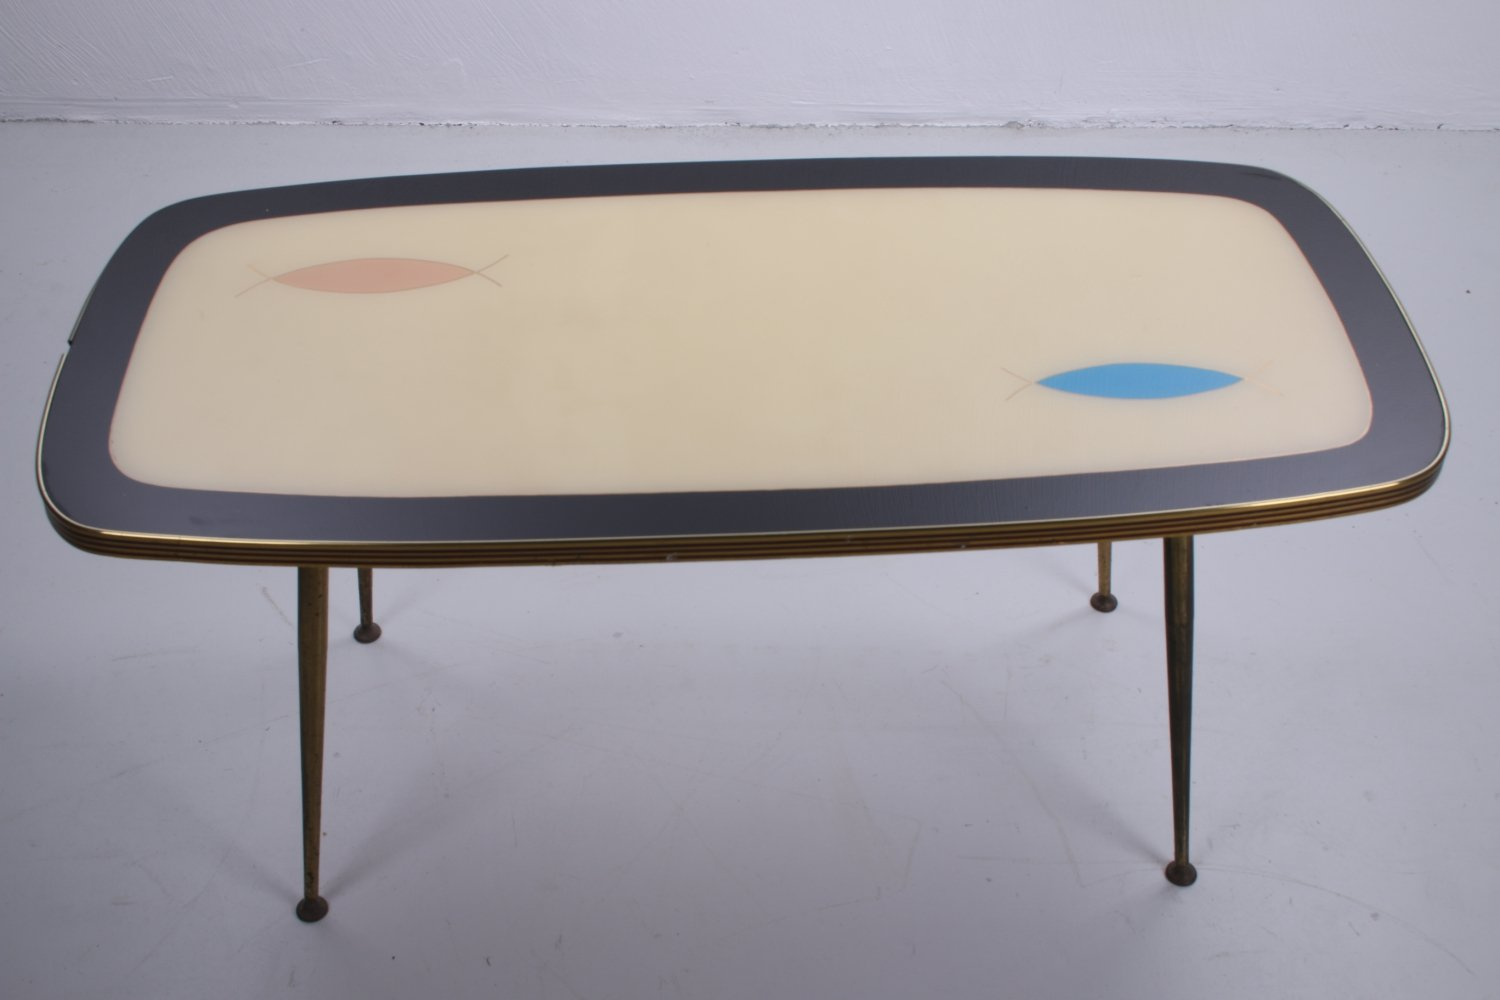 Vintage coffee table with glass top, 1960s